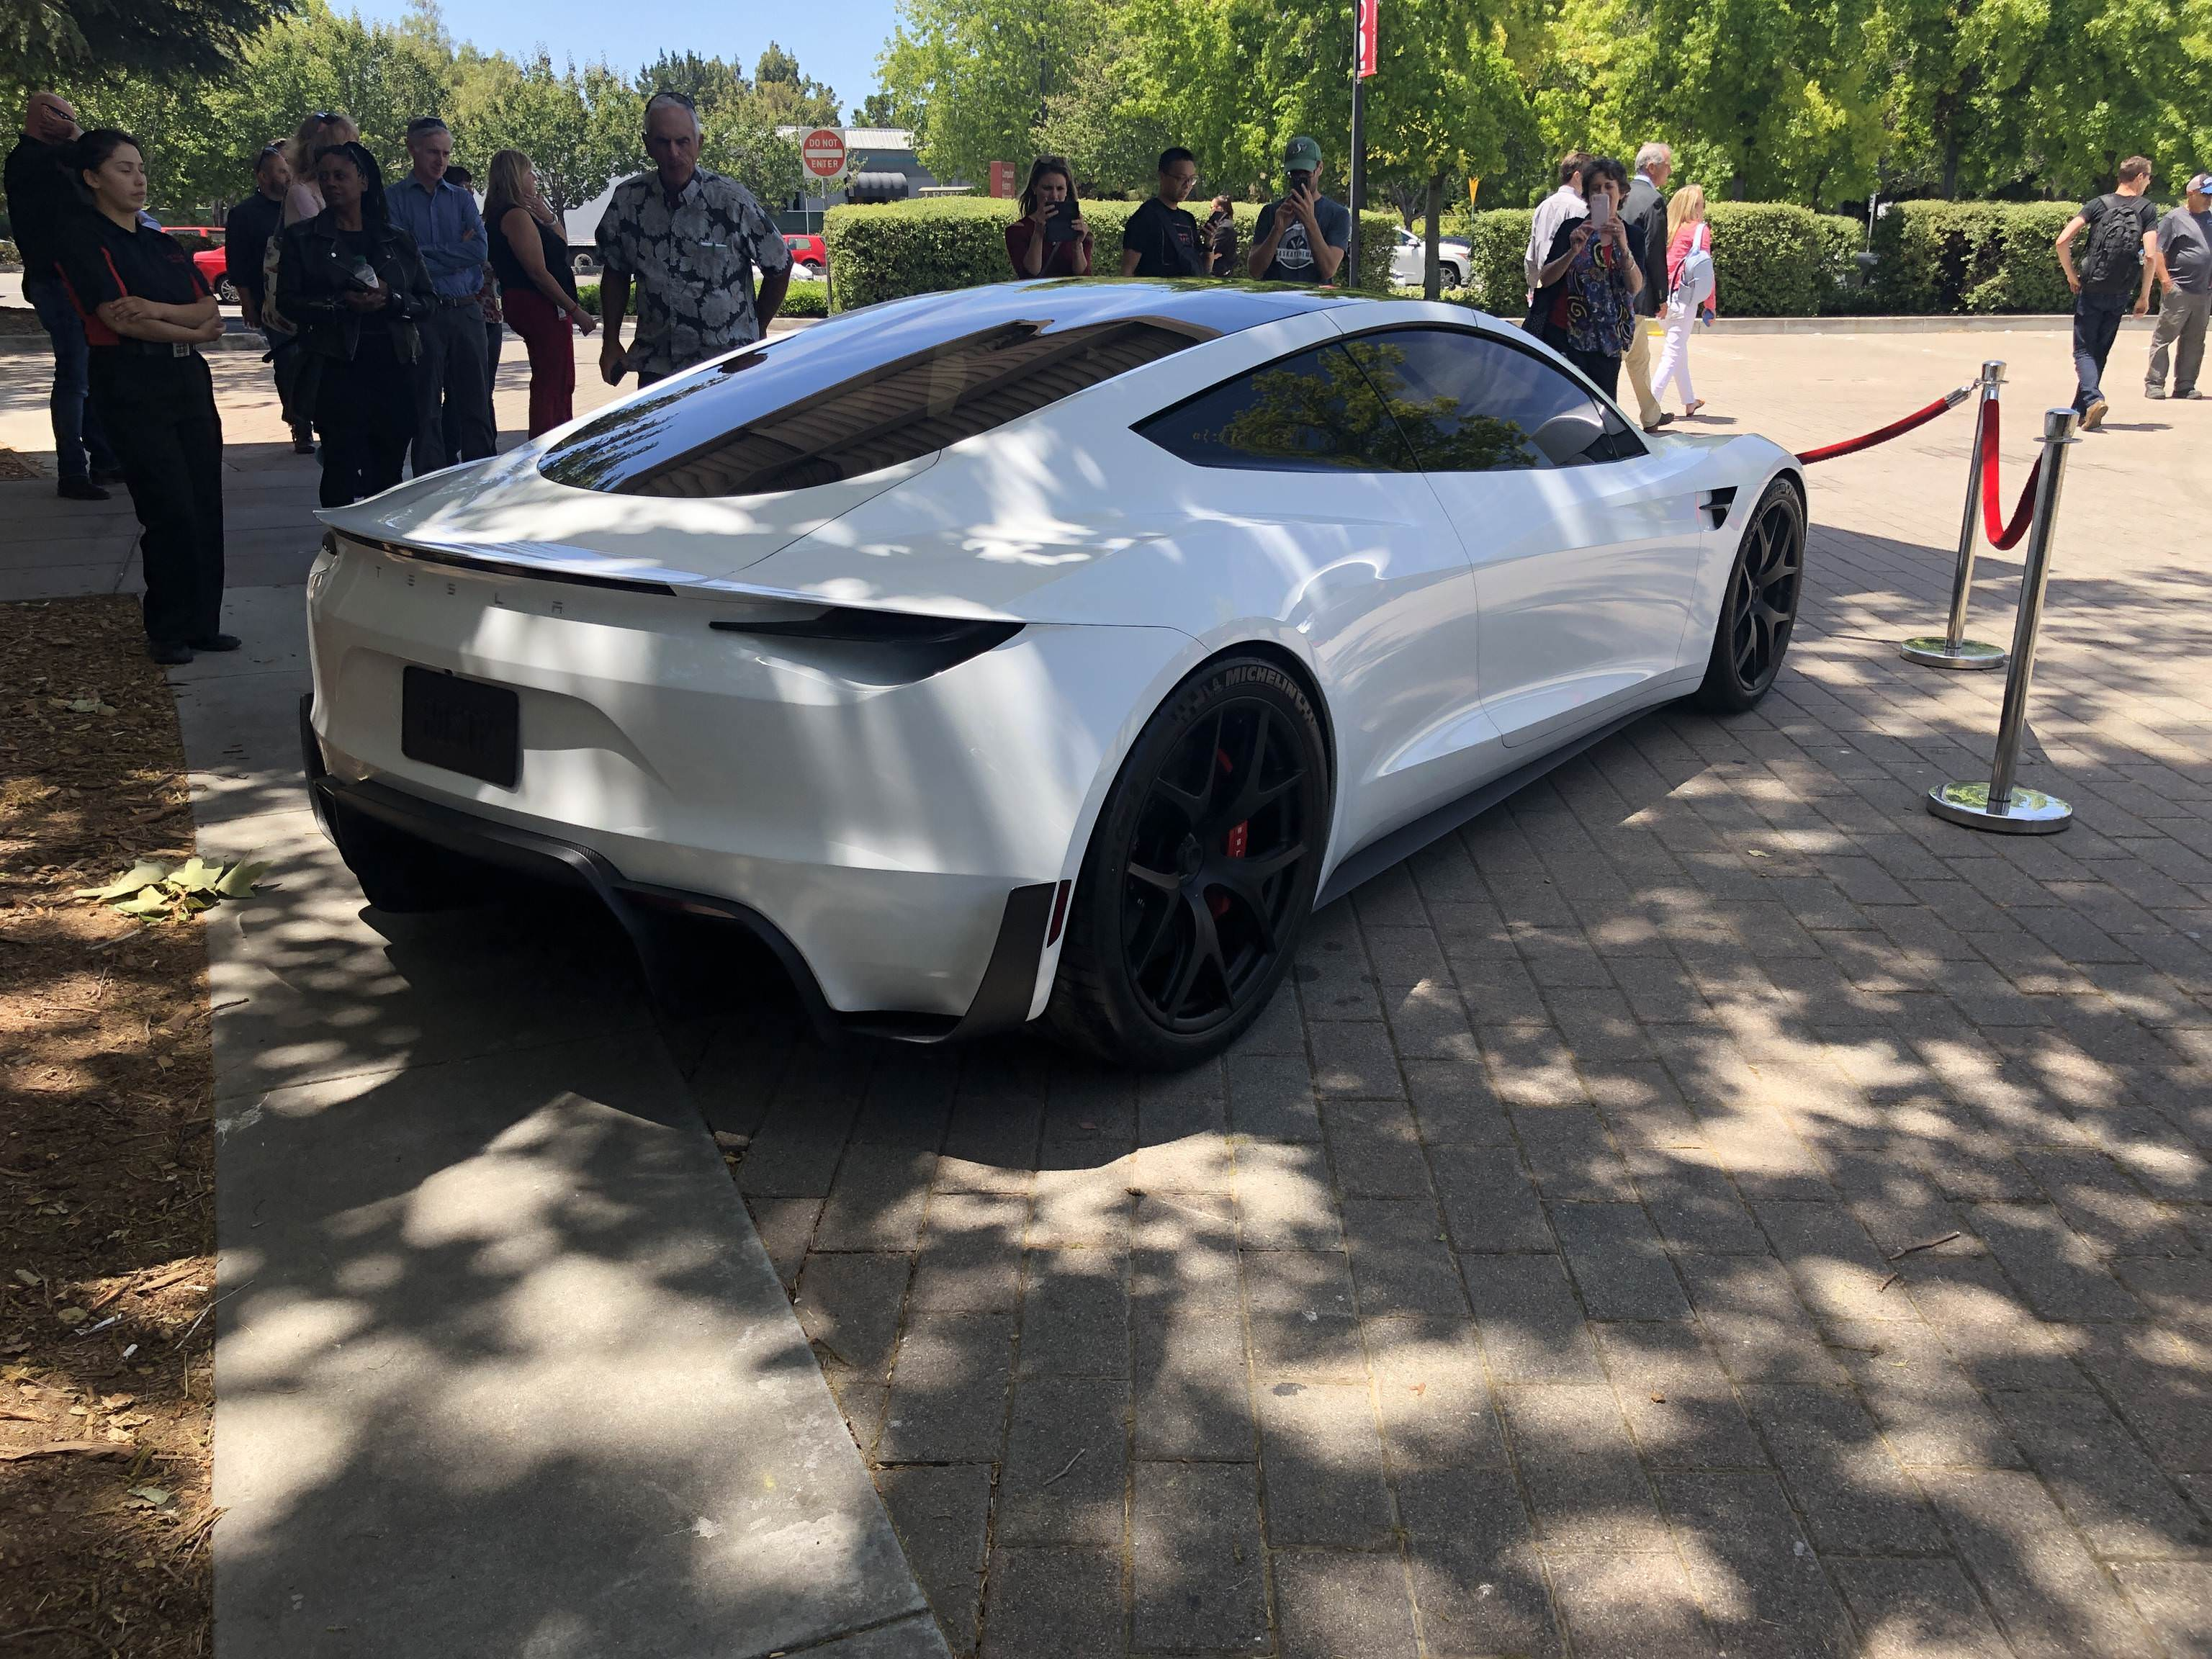 People At The Event Started To Share Images Of New Electric Supercar On Social Media Pictures Via Ryaneager Reddit And Tamino Wirz Tesla Owners